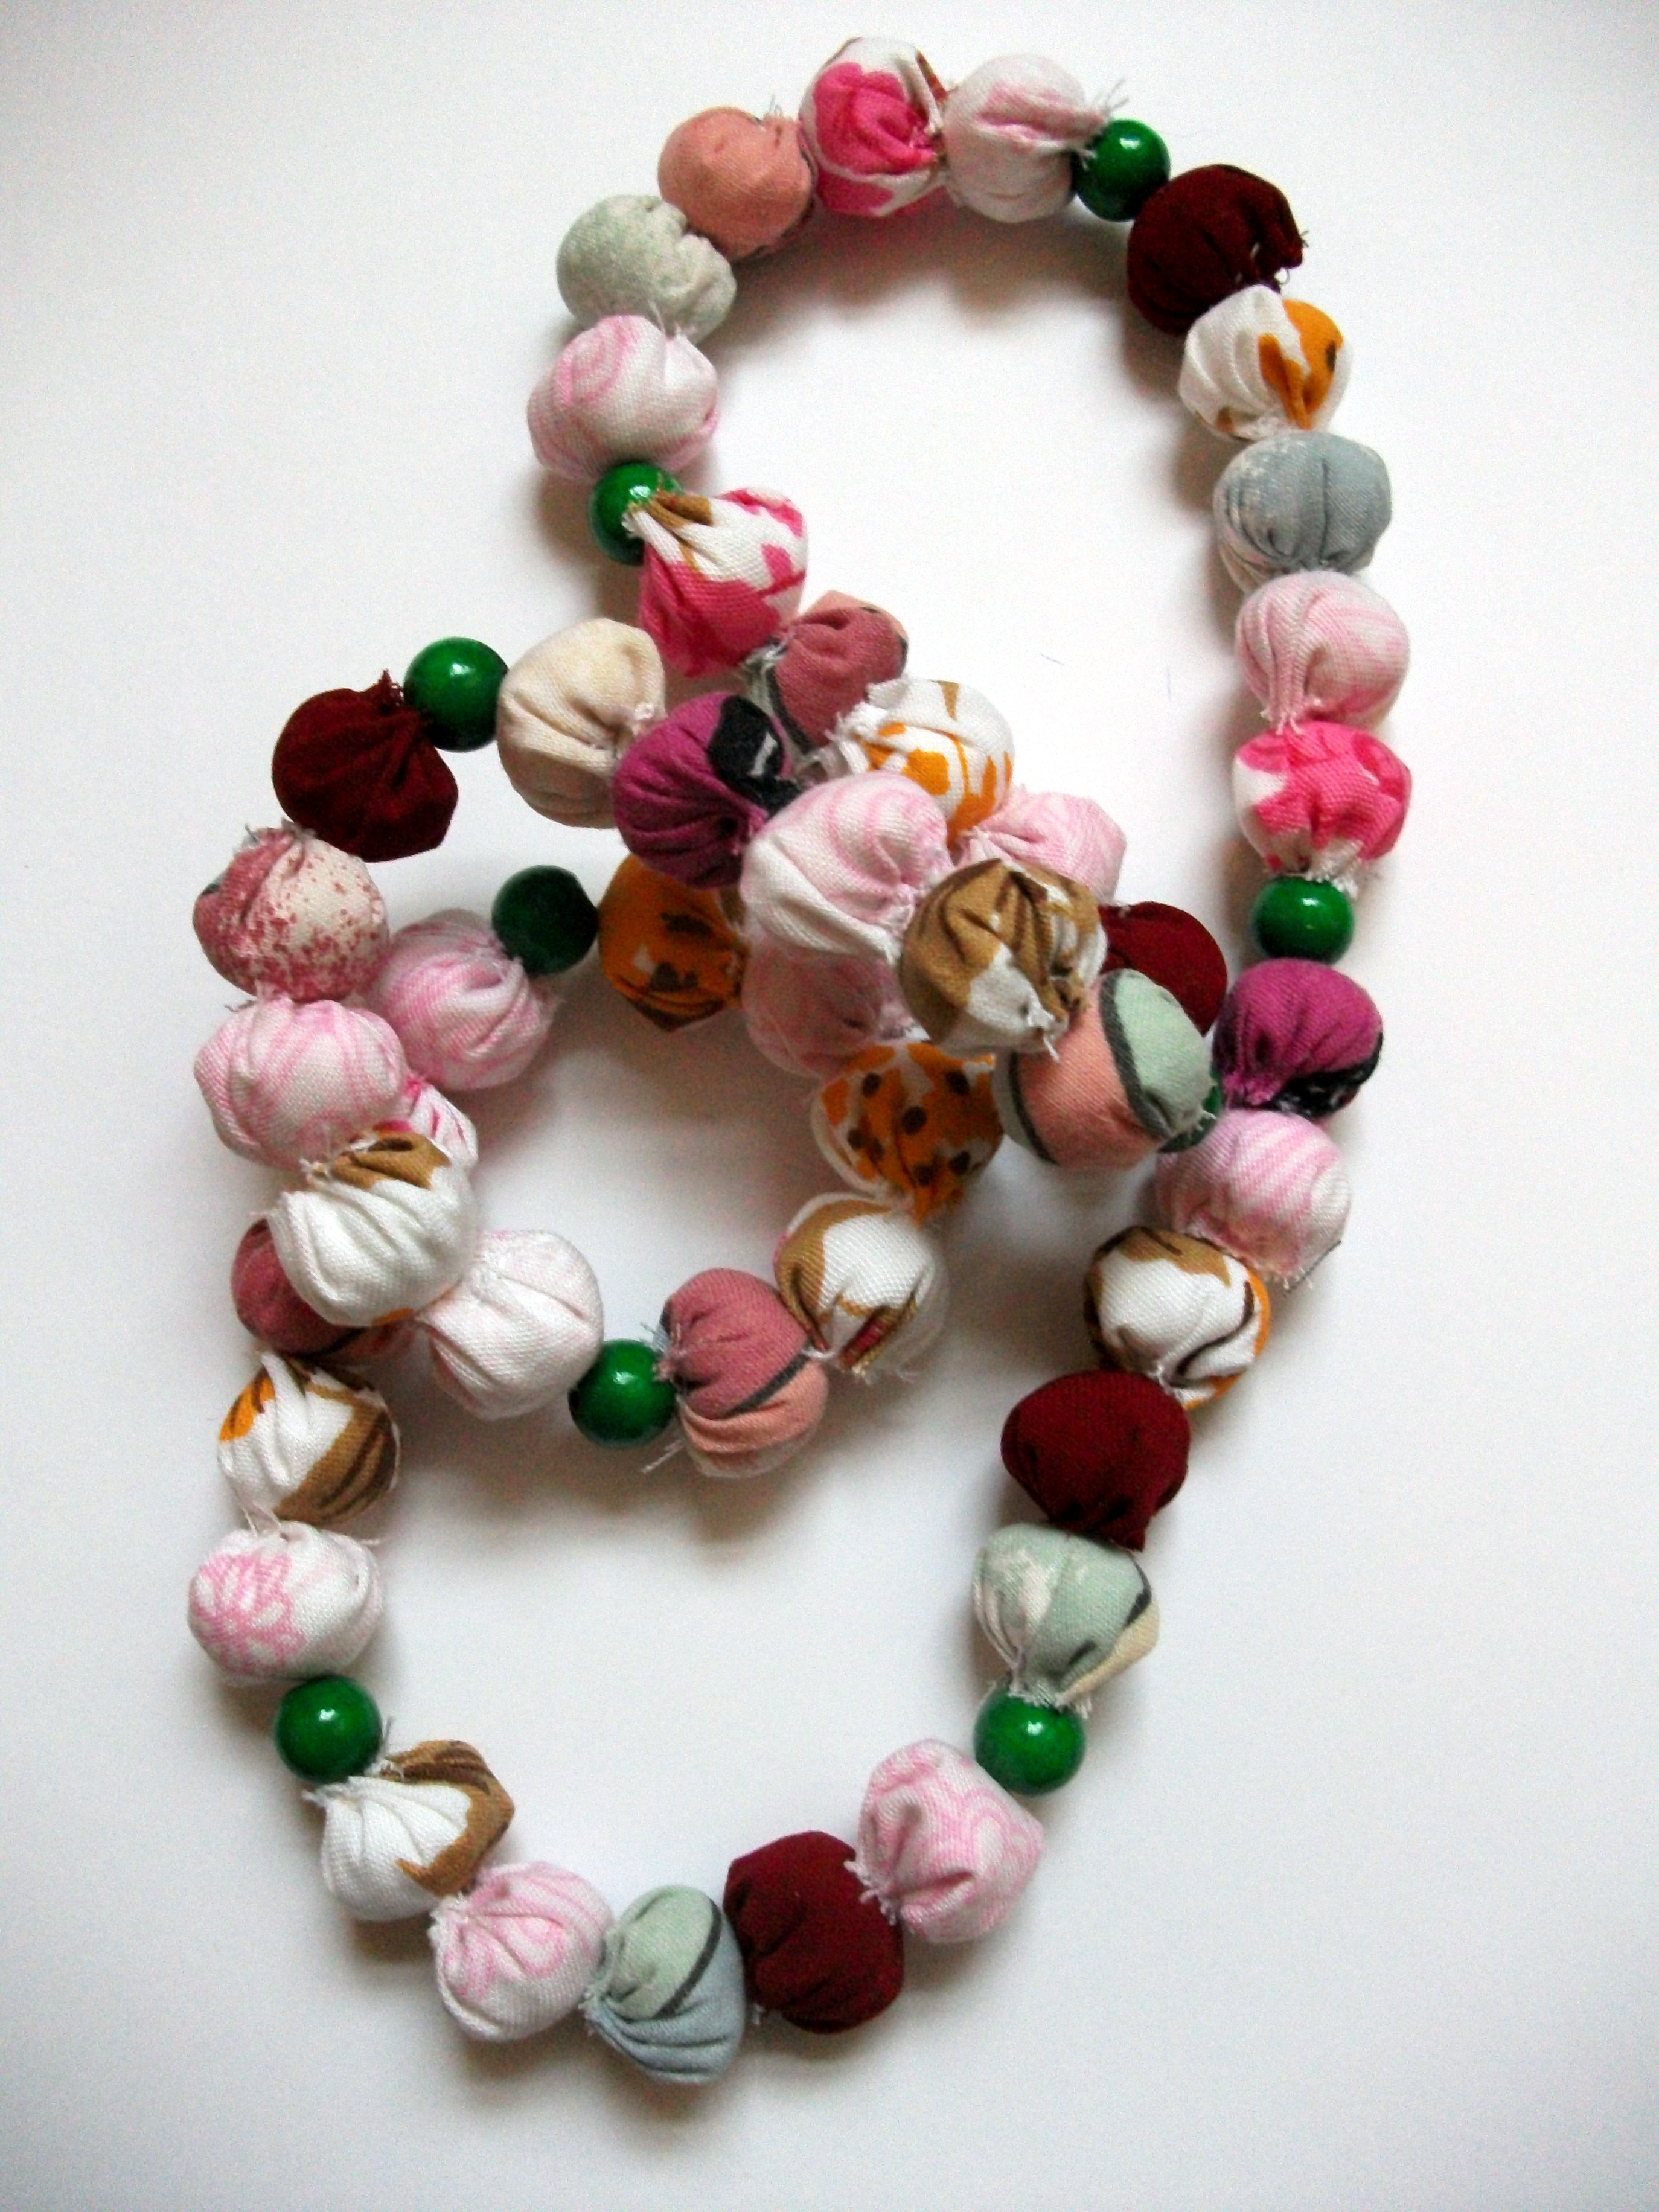 Upcycled fabric necklace for Modcloth\'s Handmade Contest – Sewing ...